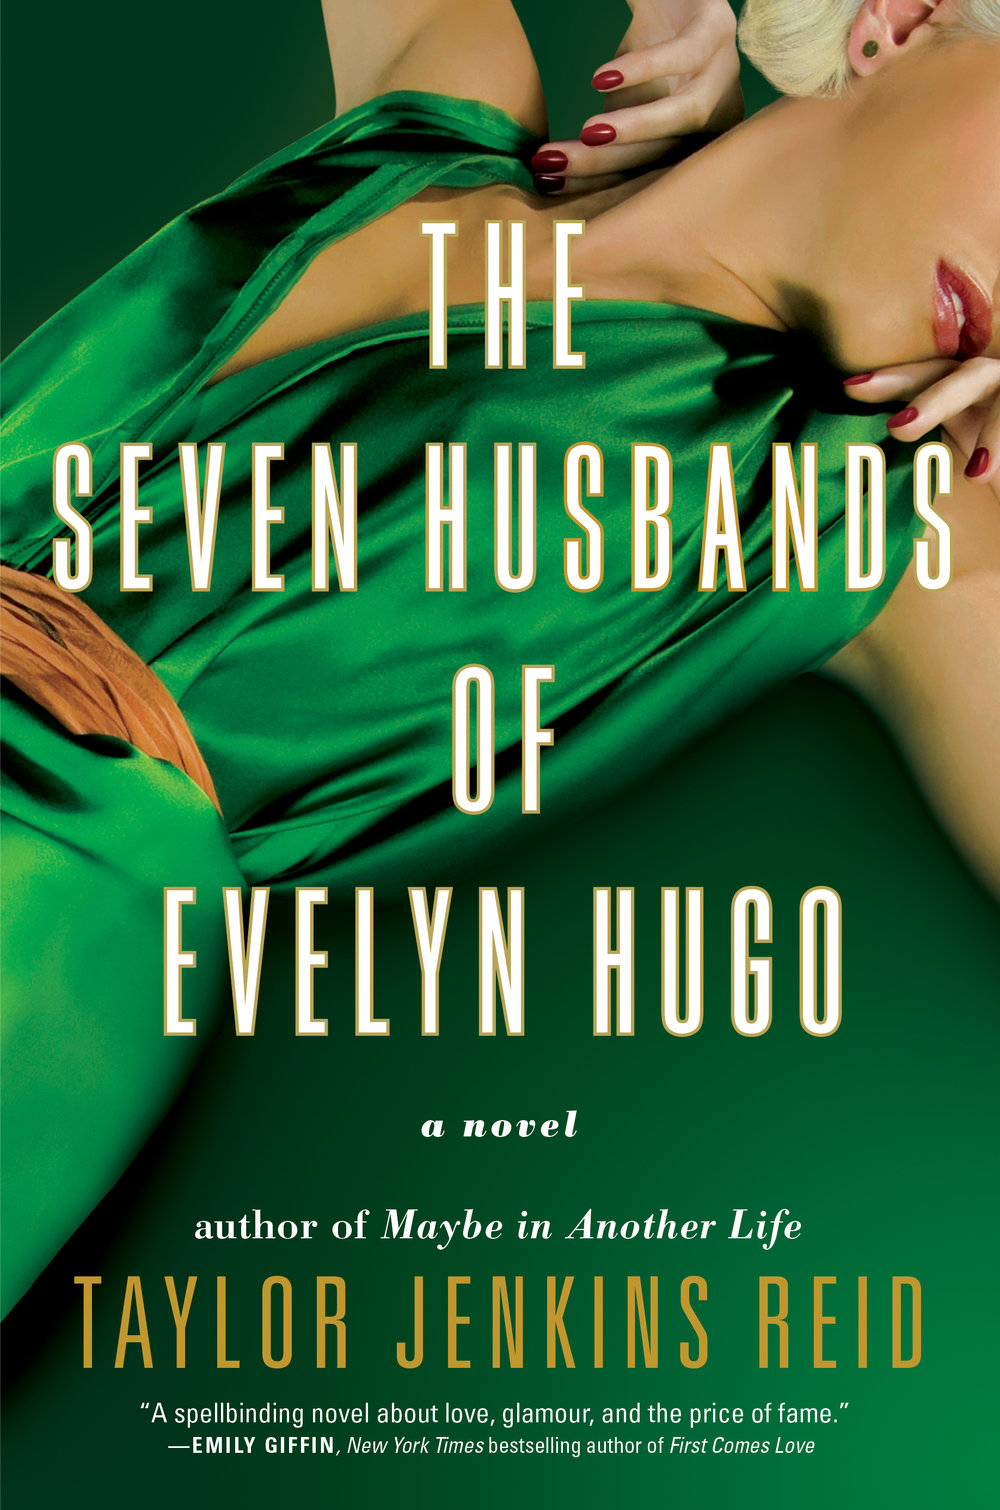 The Seven Husbands of Evelyn Hugo by Taylor Jenkins Reid.jpg